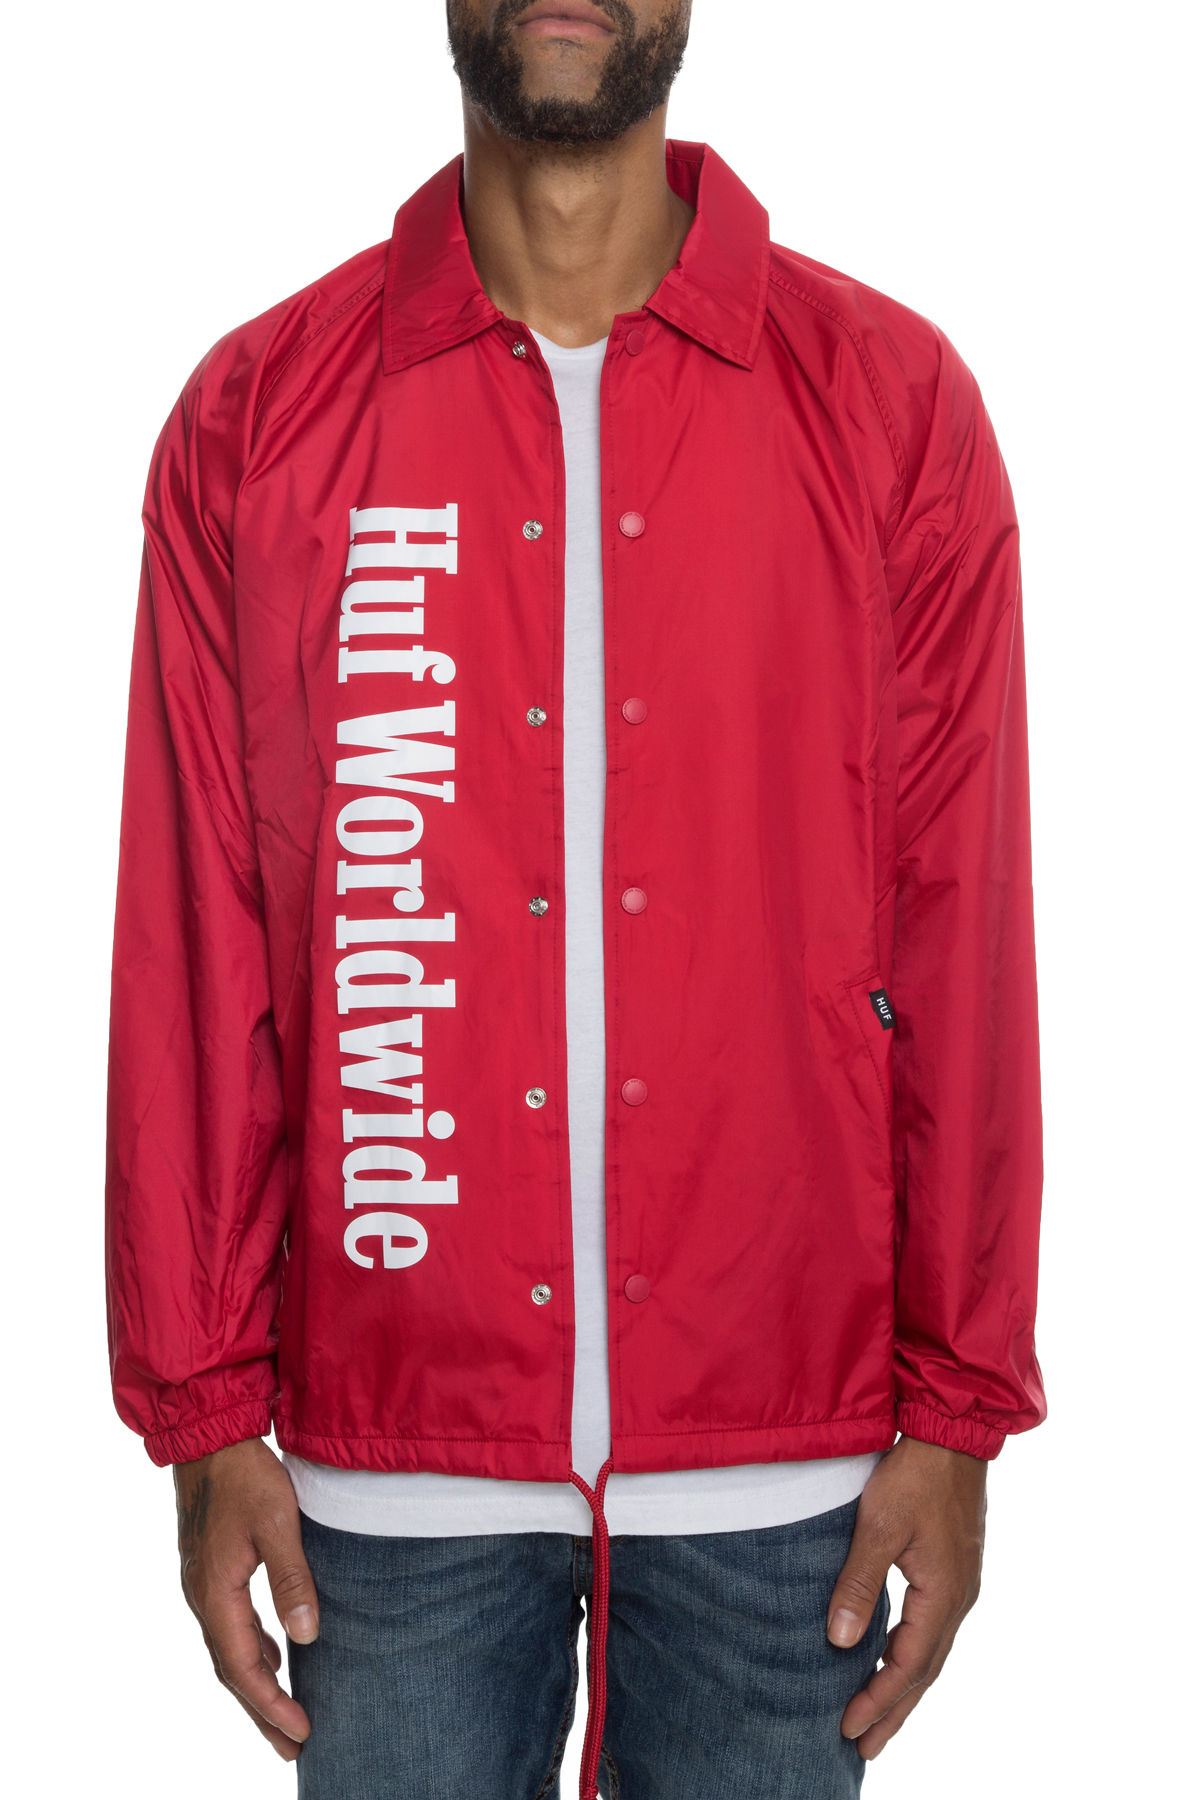 The Huf Country Coaches Jacket in Red